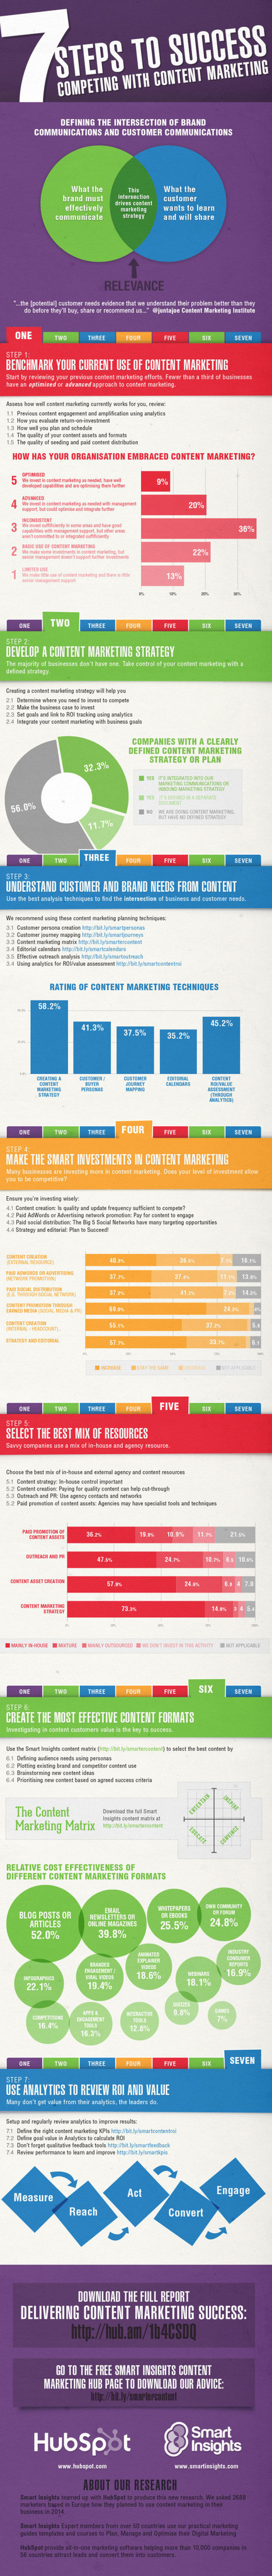 Infographic: 7 Steps to Content Marketing Success - Marketing Technology Blog | Digital Media Community | Scoop.it